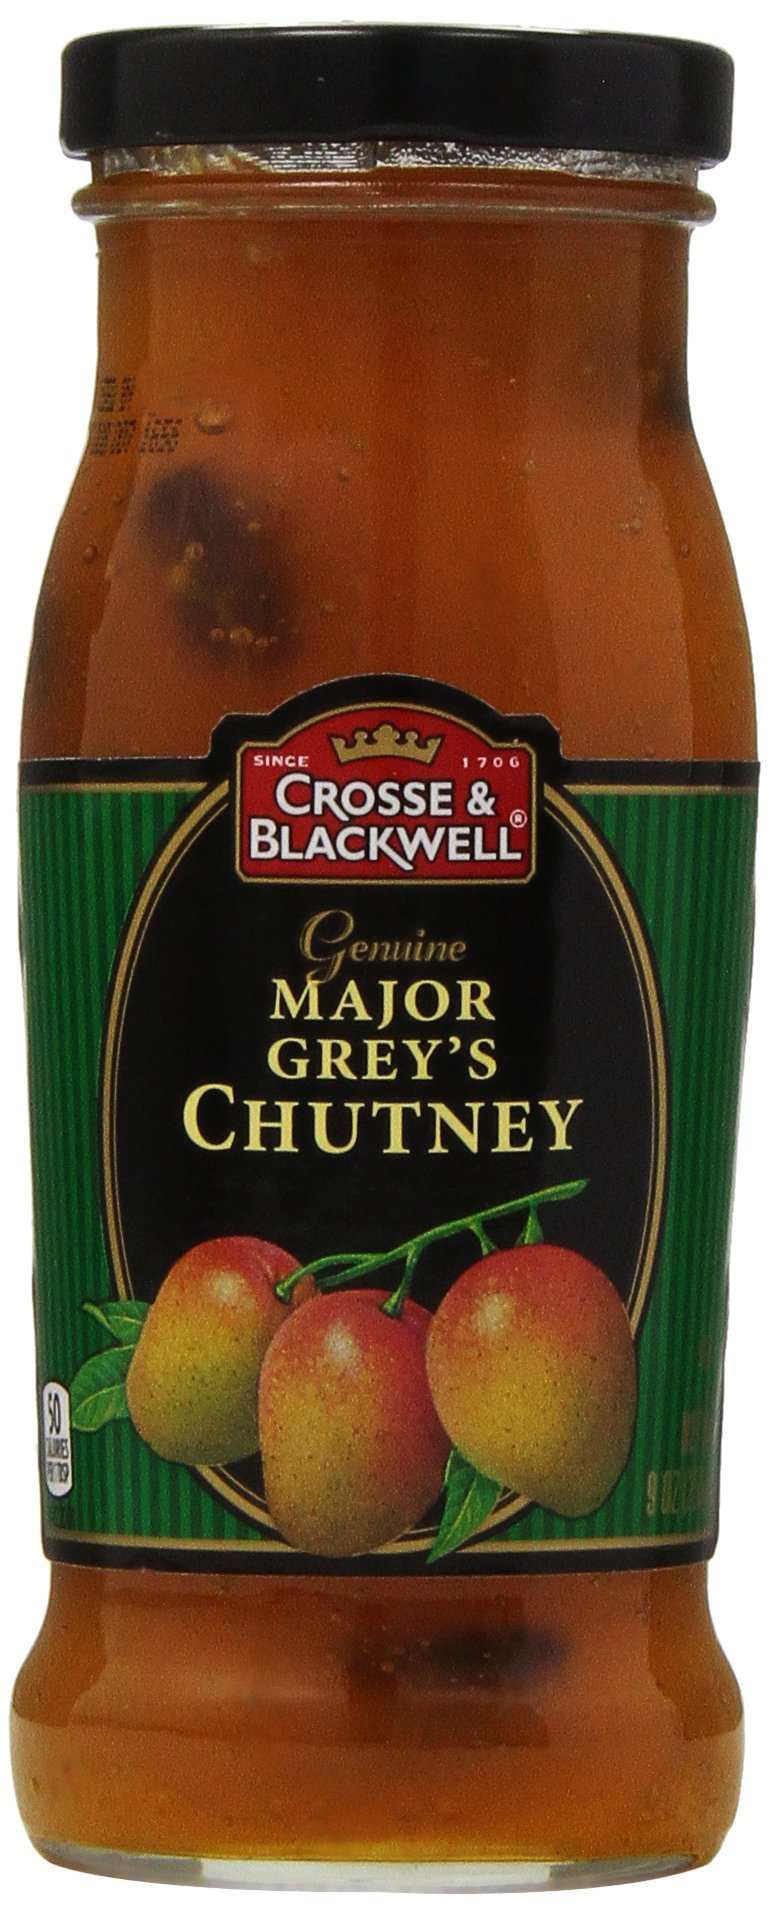 Crosse & Blackwell Genuine Major Grey's Chutney, 9 oz